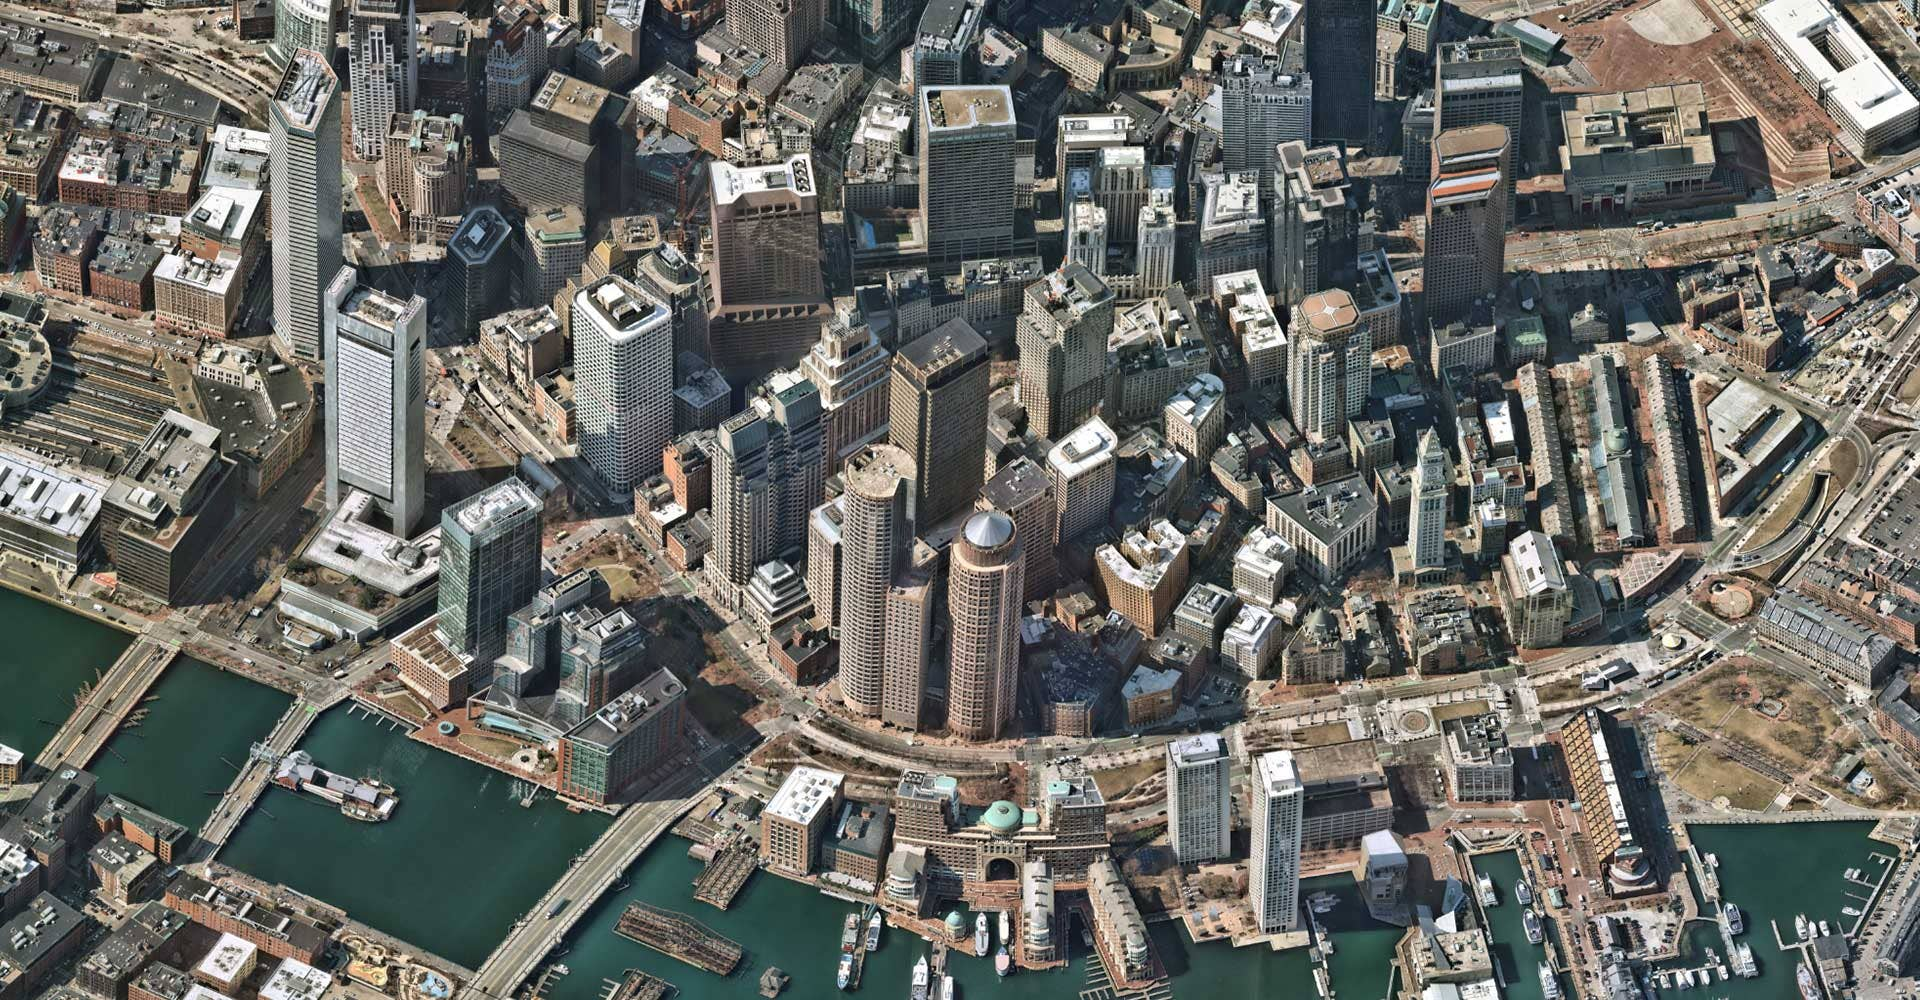 Boston, Massachusetts downtown high resolution aerial image